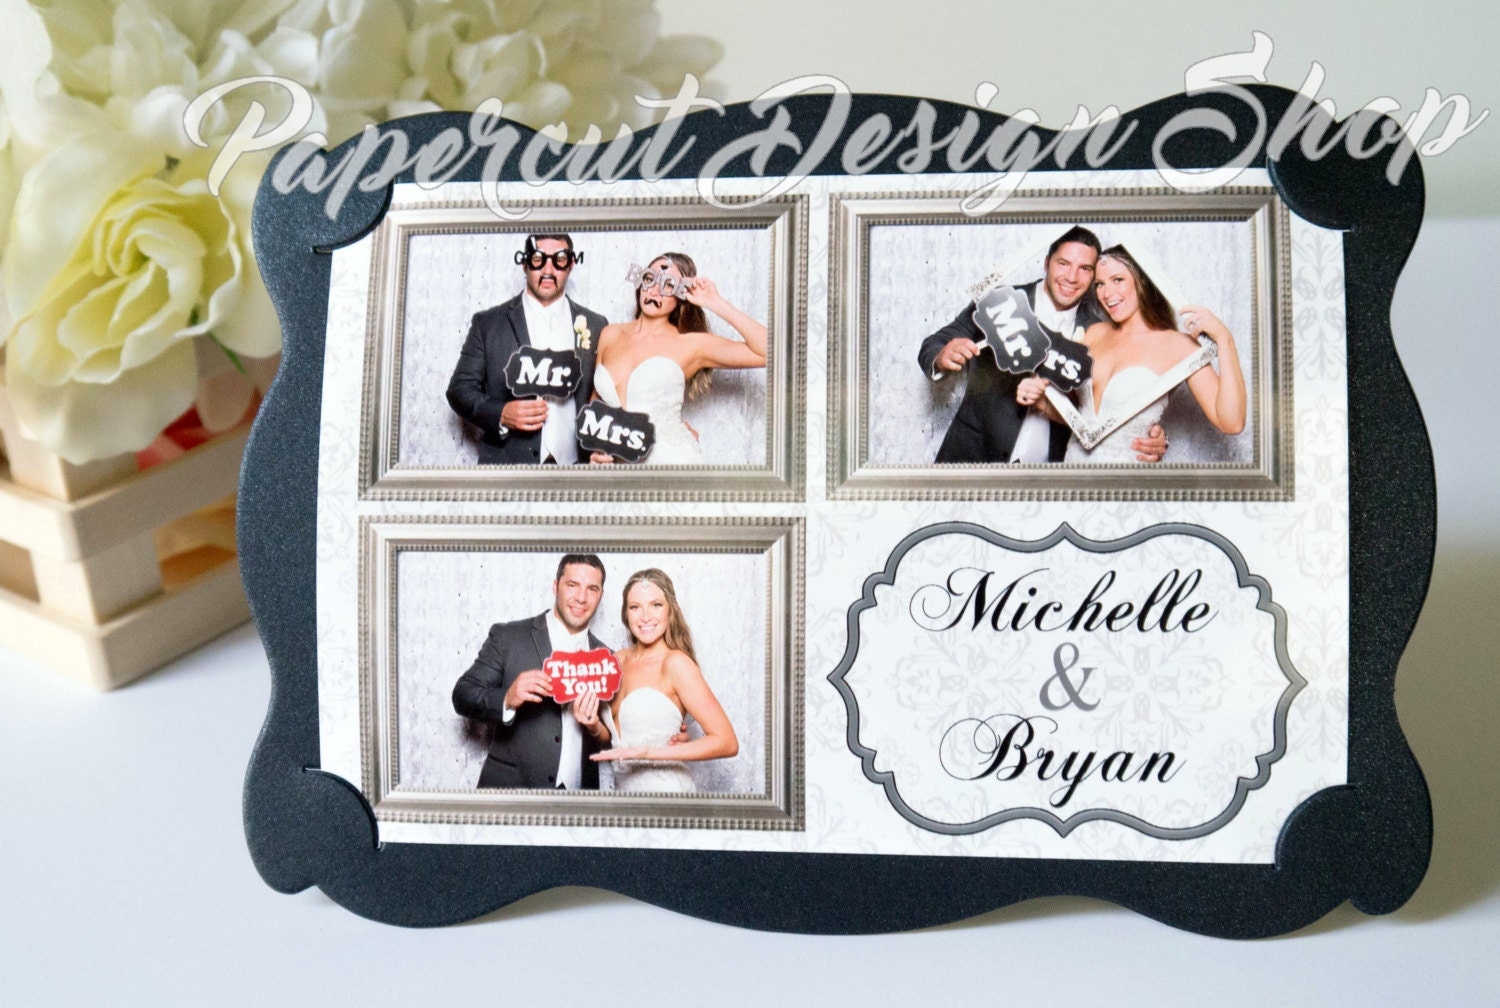 Awesome Photo Booth Picture Frames Wedding Favors Photos - Ideas de ...